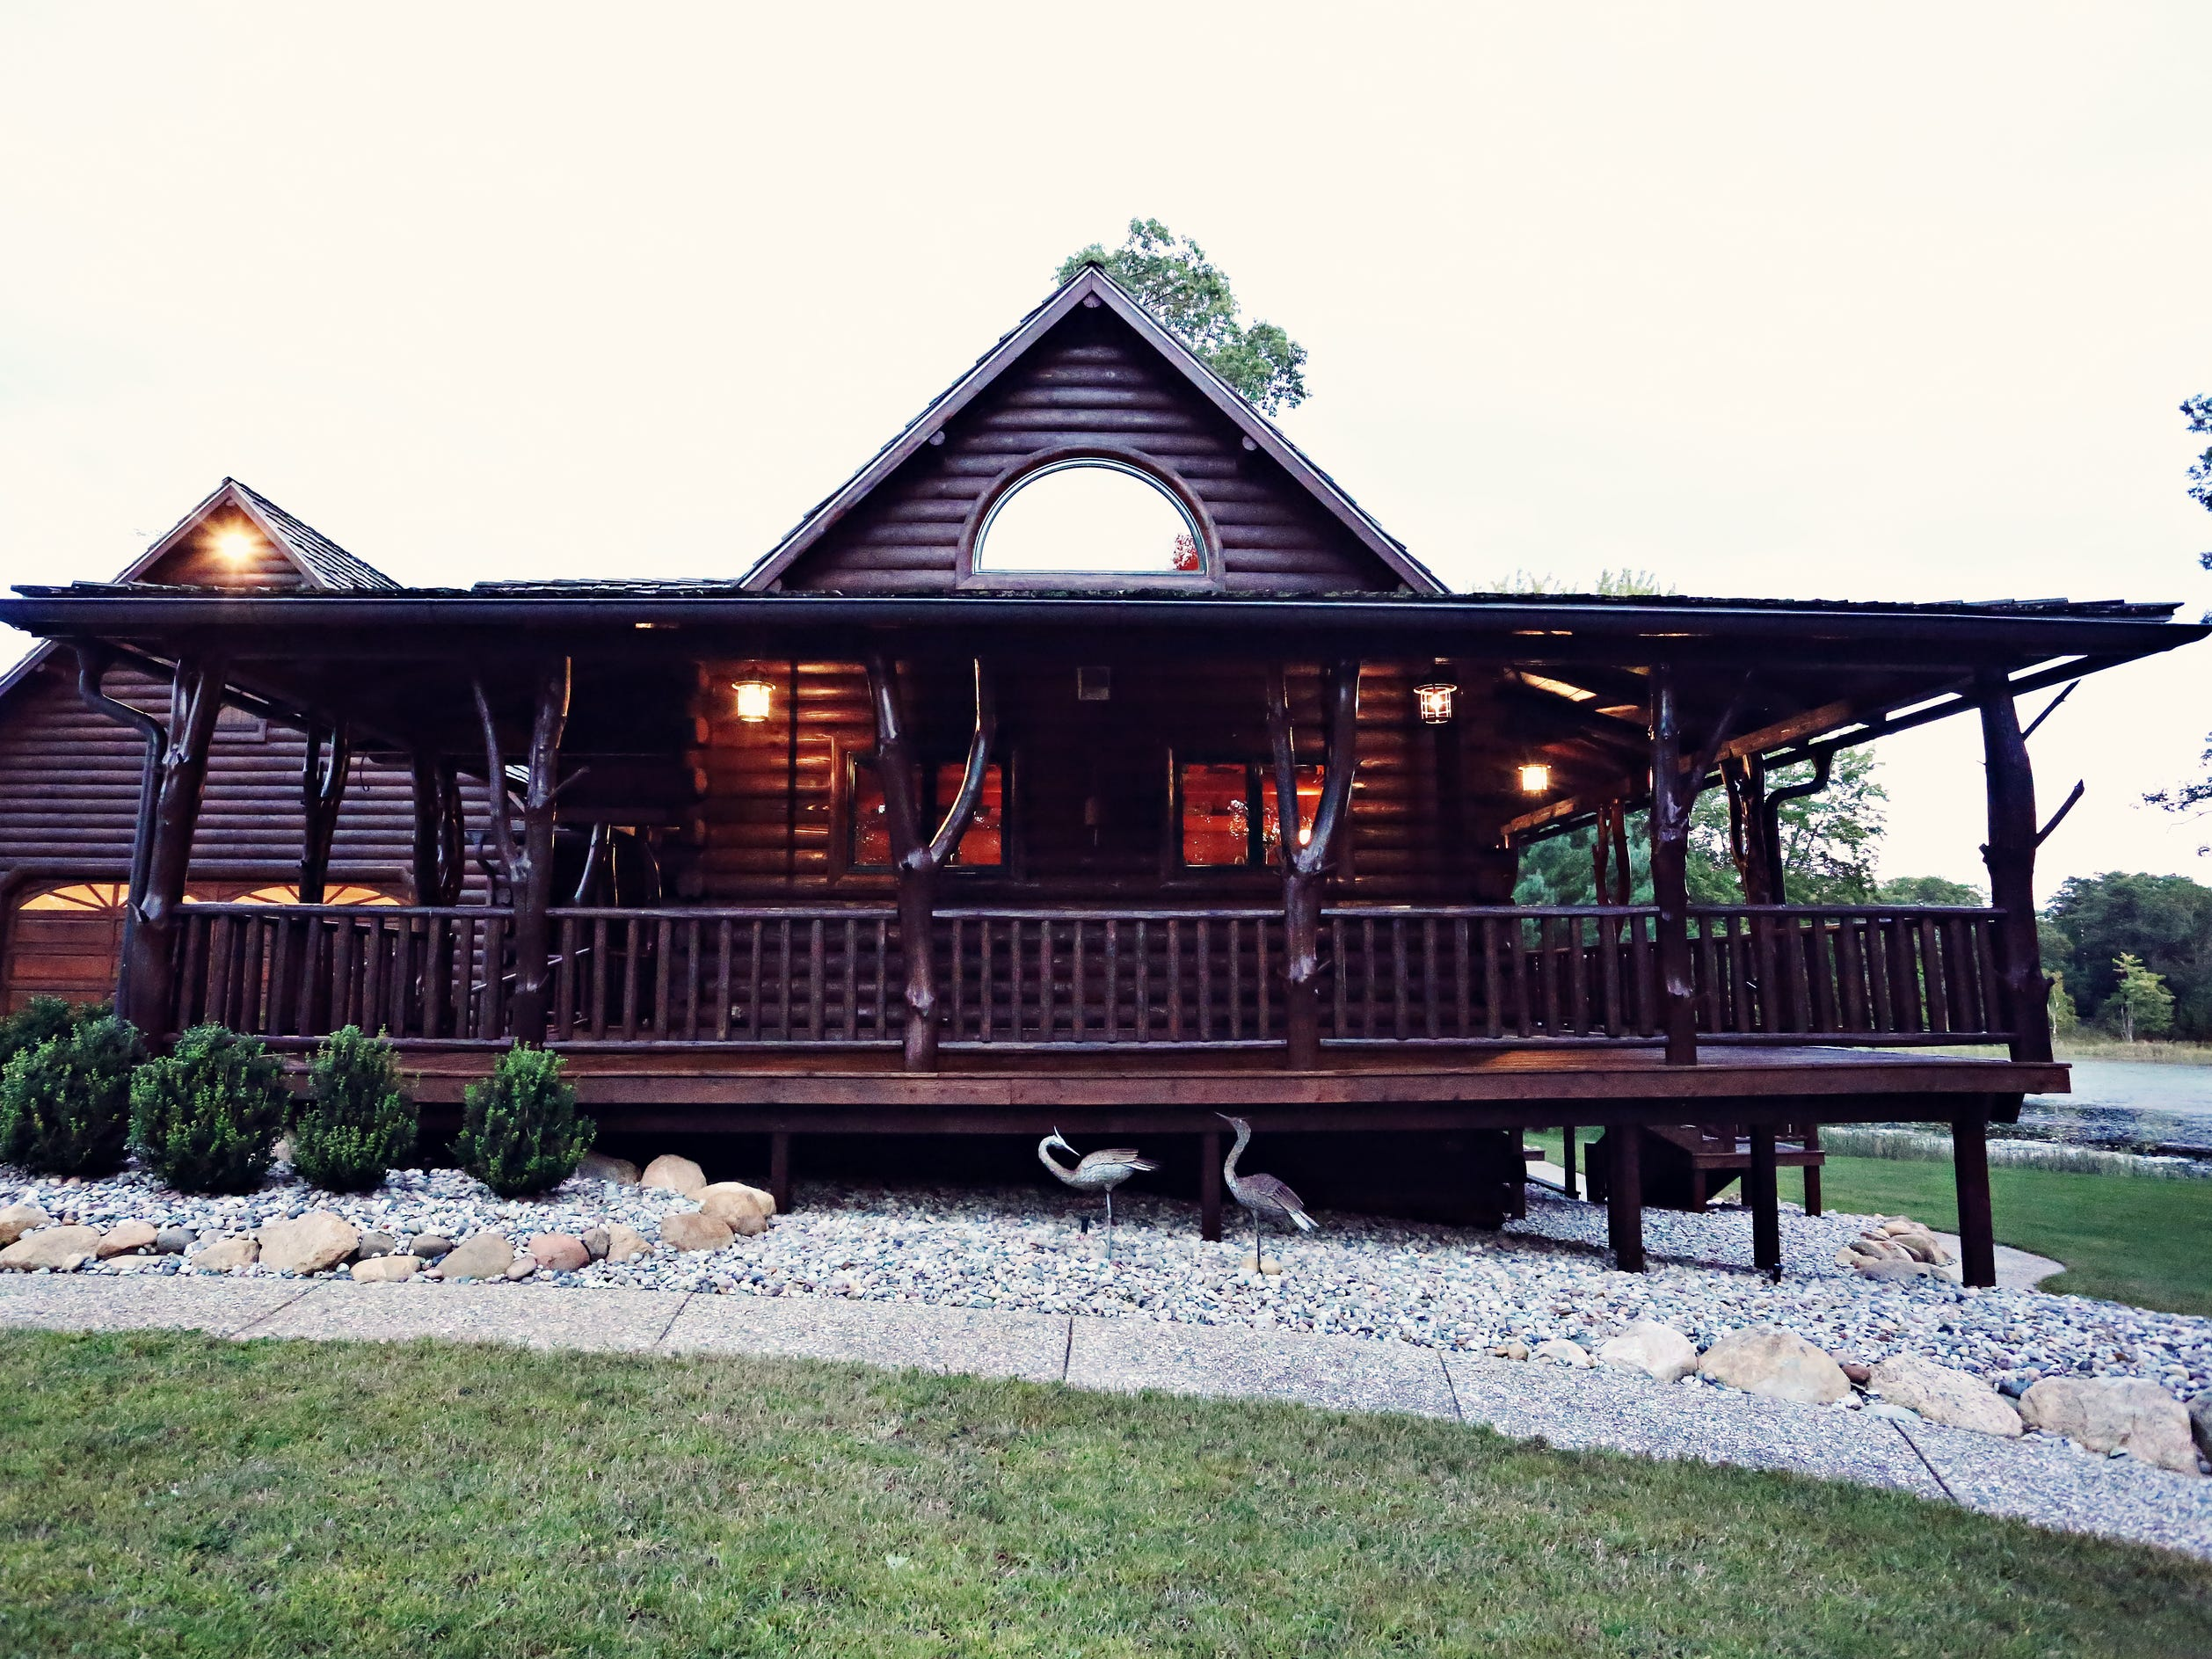 The ranch's log cabin, built in 2007, has five bedrooms, three bathrooms and a two-car garage. It also has a whole-house generator for back-up power supply.